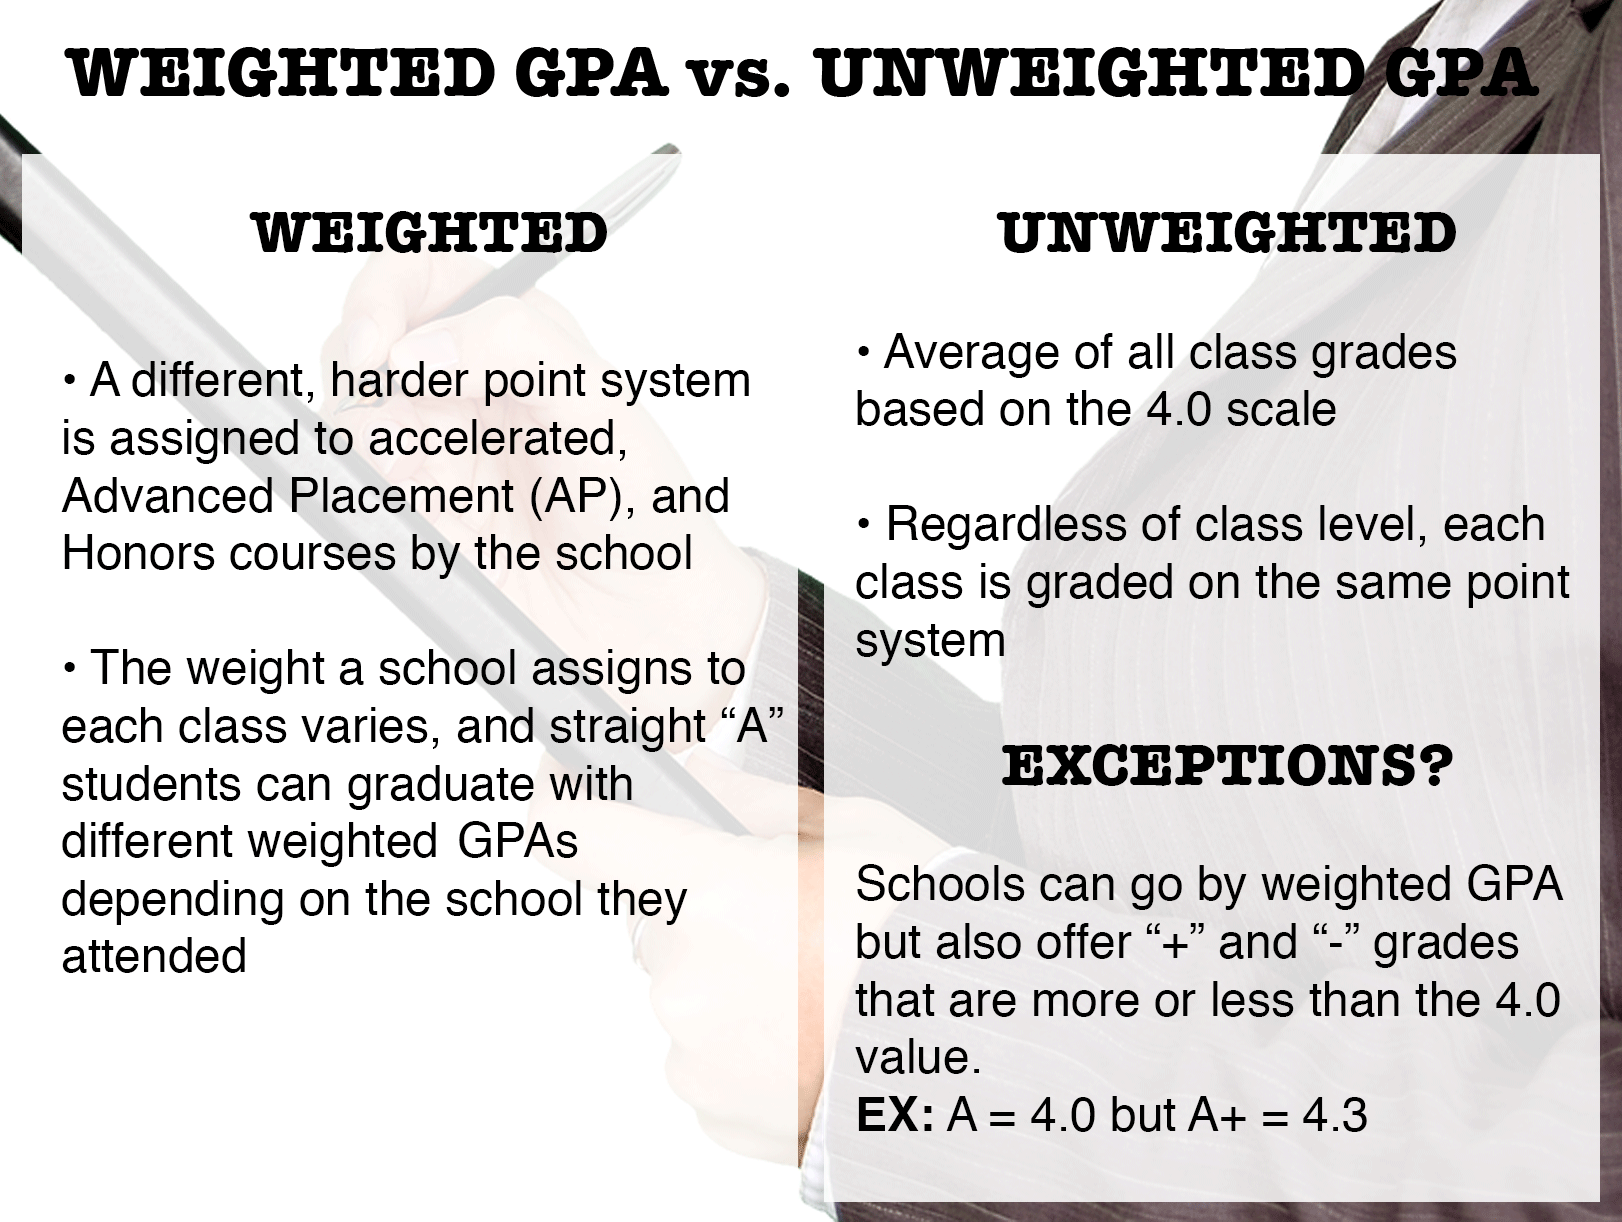 High School GPA Calculator: Weighted GPA vs. Unweighted GPA